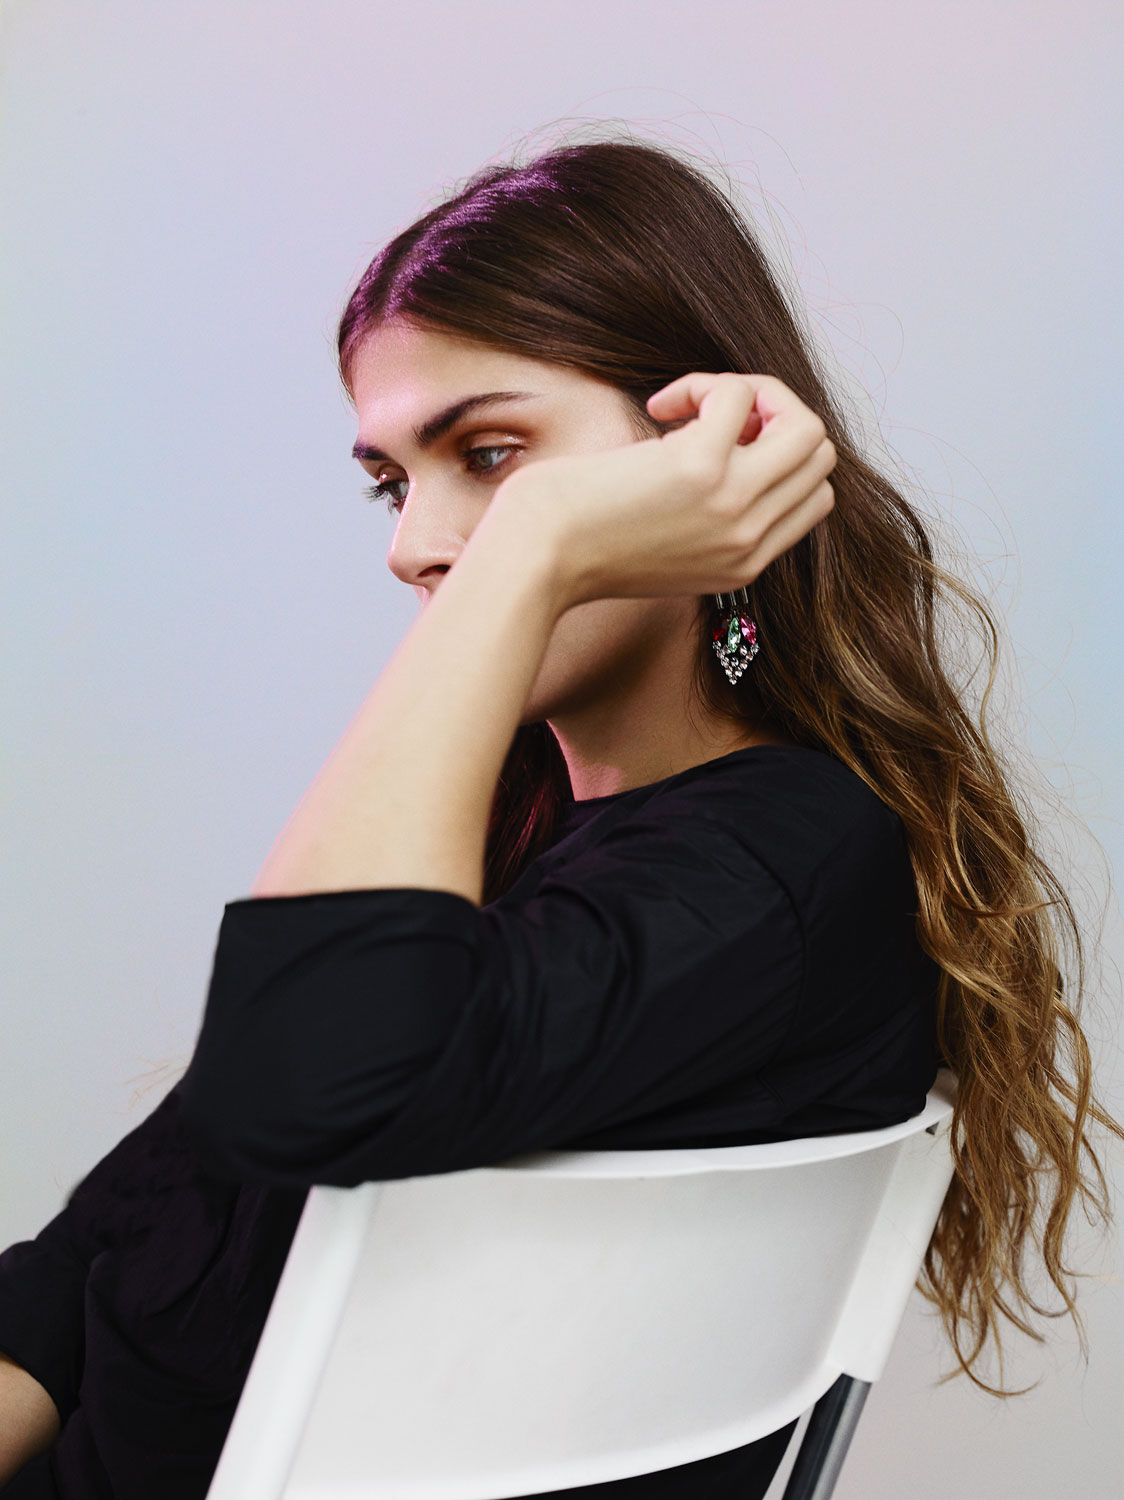 Anthracite three-quarter sleeve t-shirt  MAX MARA , faded ink on rose brass earrings with pink and cristal navettes  IOSSELLIANI .